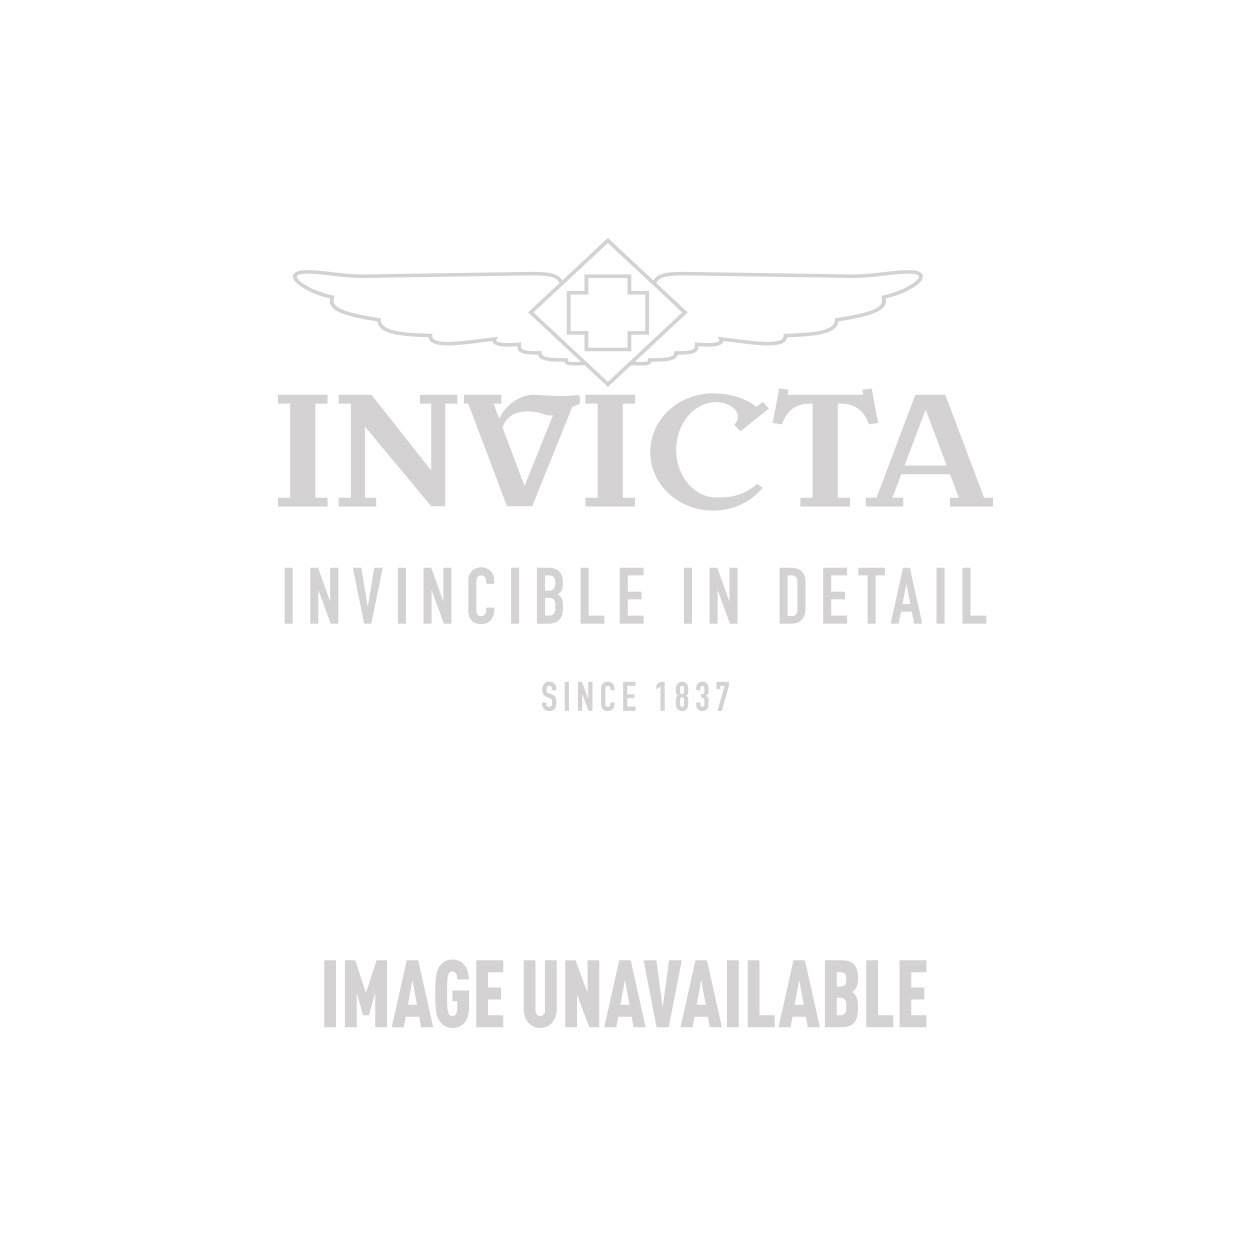 Invicta Sea Base Automatic Watch - Gold case with Gold tone Stainless Steel band - Model 17923